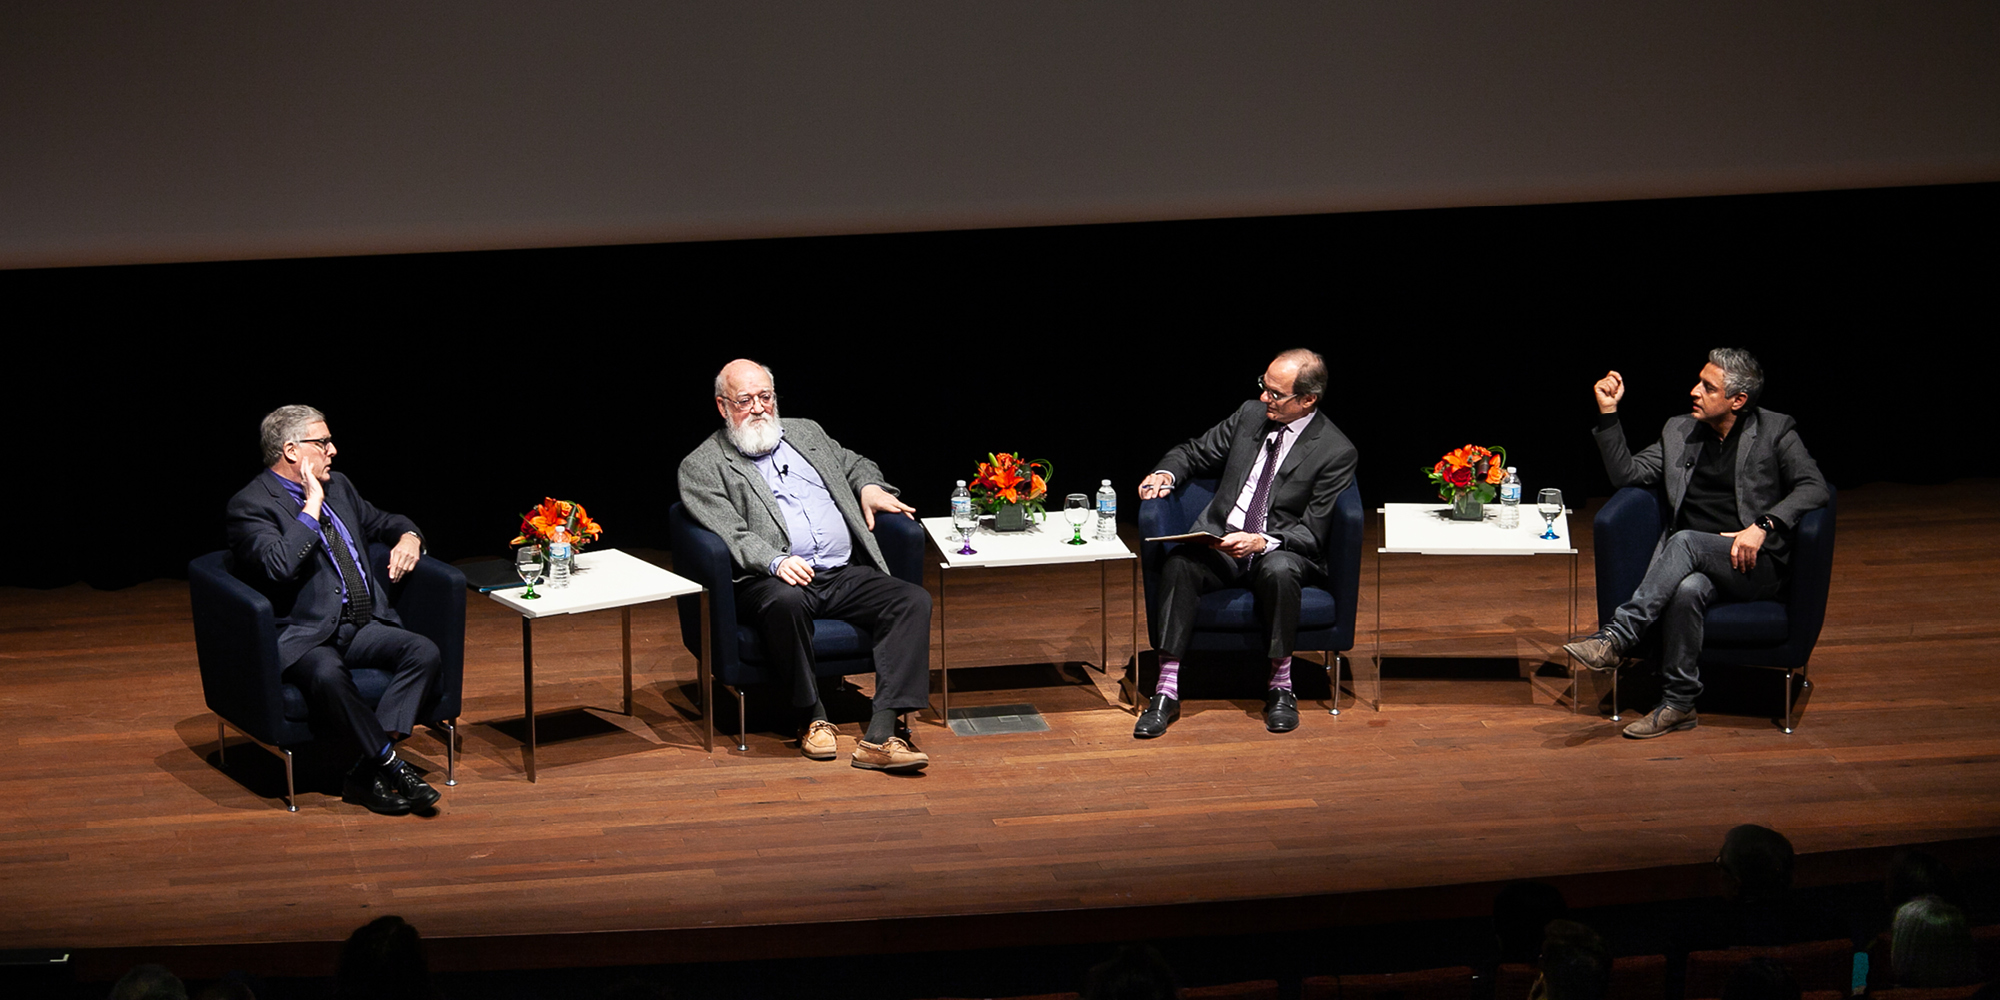 William Schweiker, Daniel C. Dennett, David Nirenberg, Reza Aslan